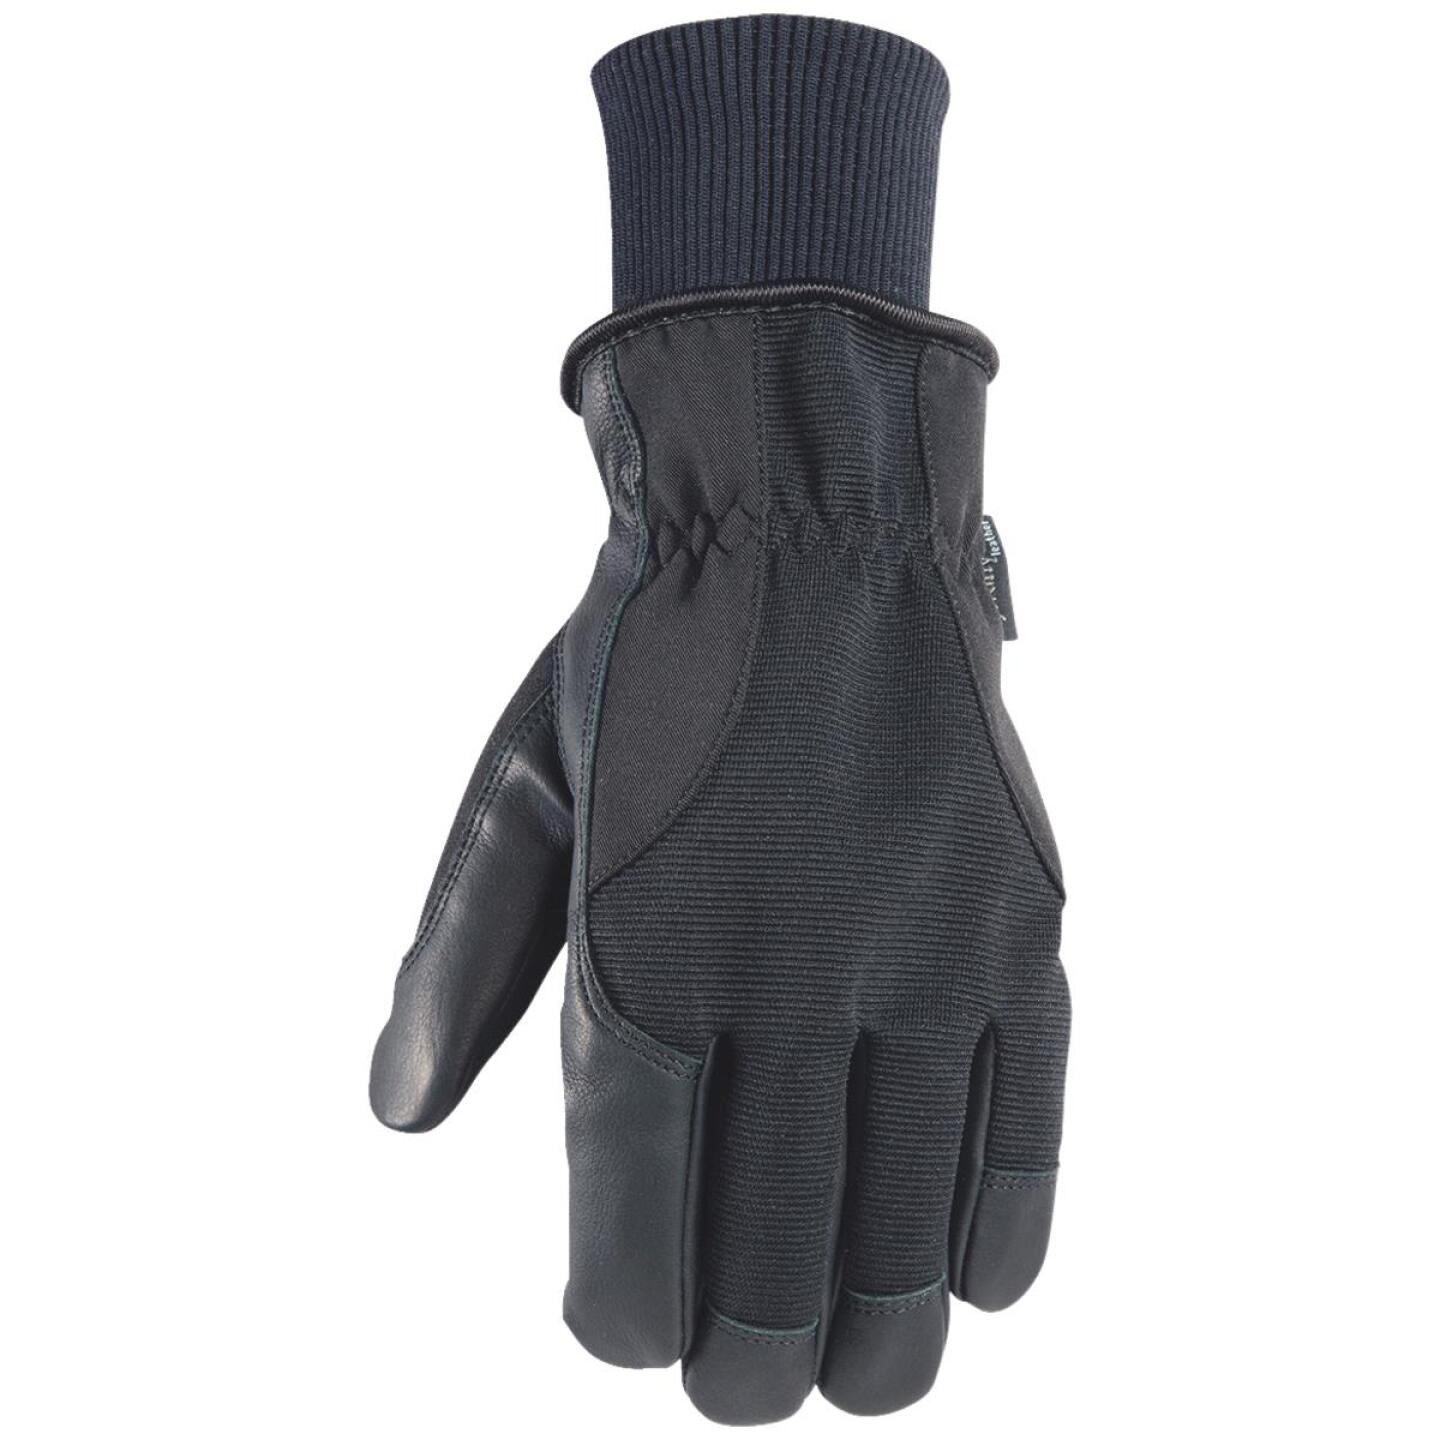 Wells Lamont HydraHyde Men's 2XL Grain Goatskin Black Insulated Work Glove Image 1